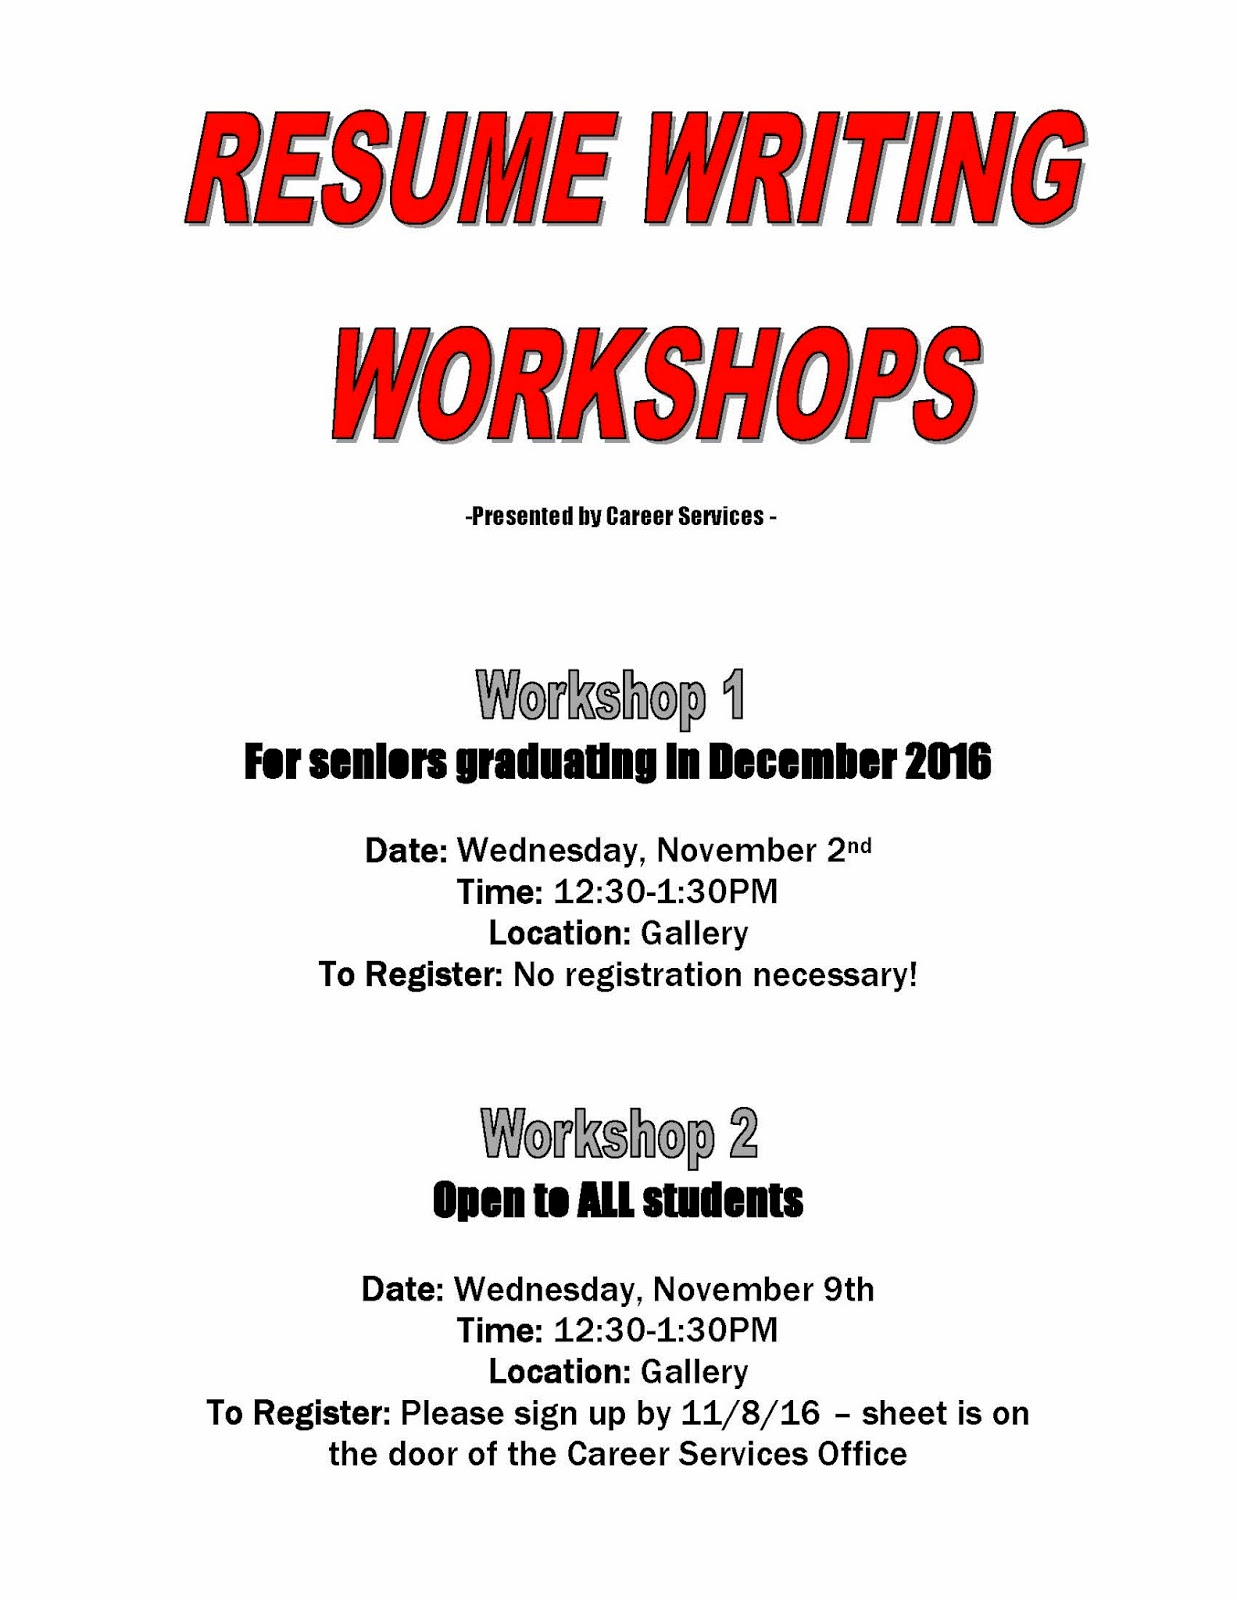 Buy resume for writing workshop